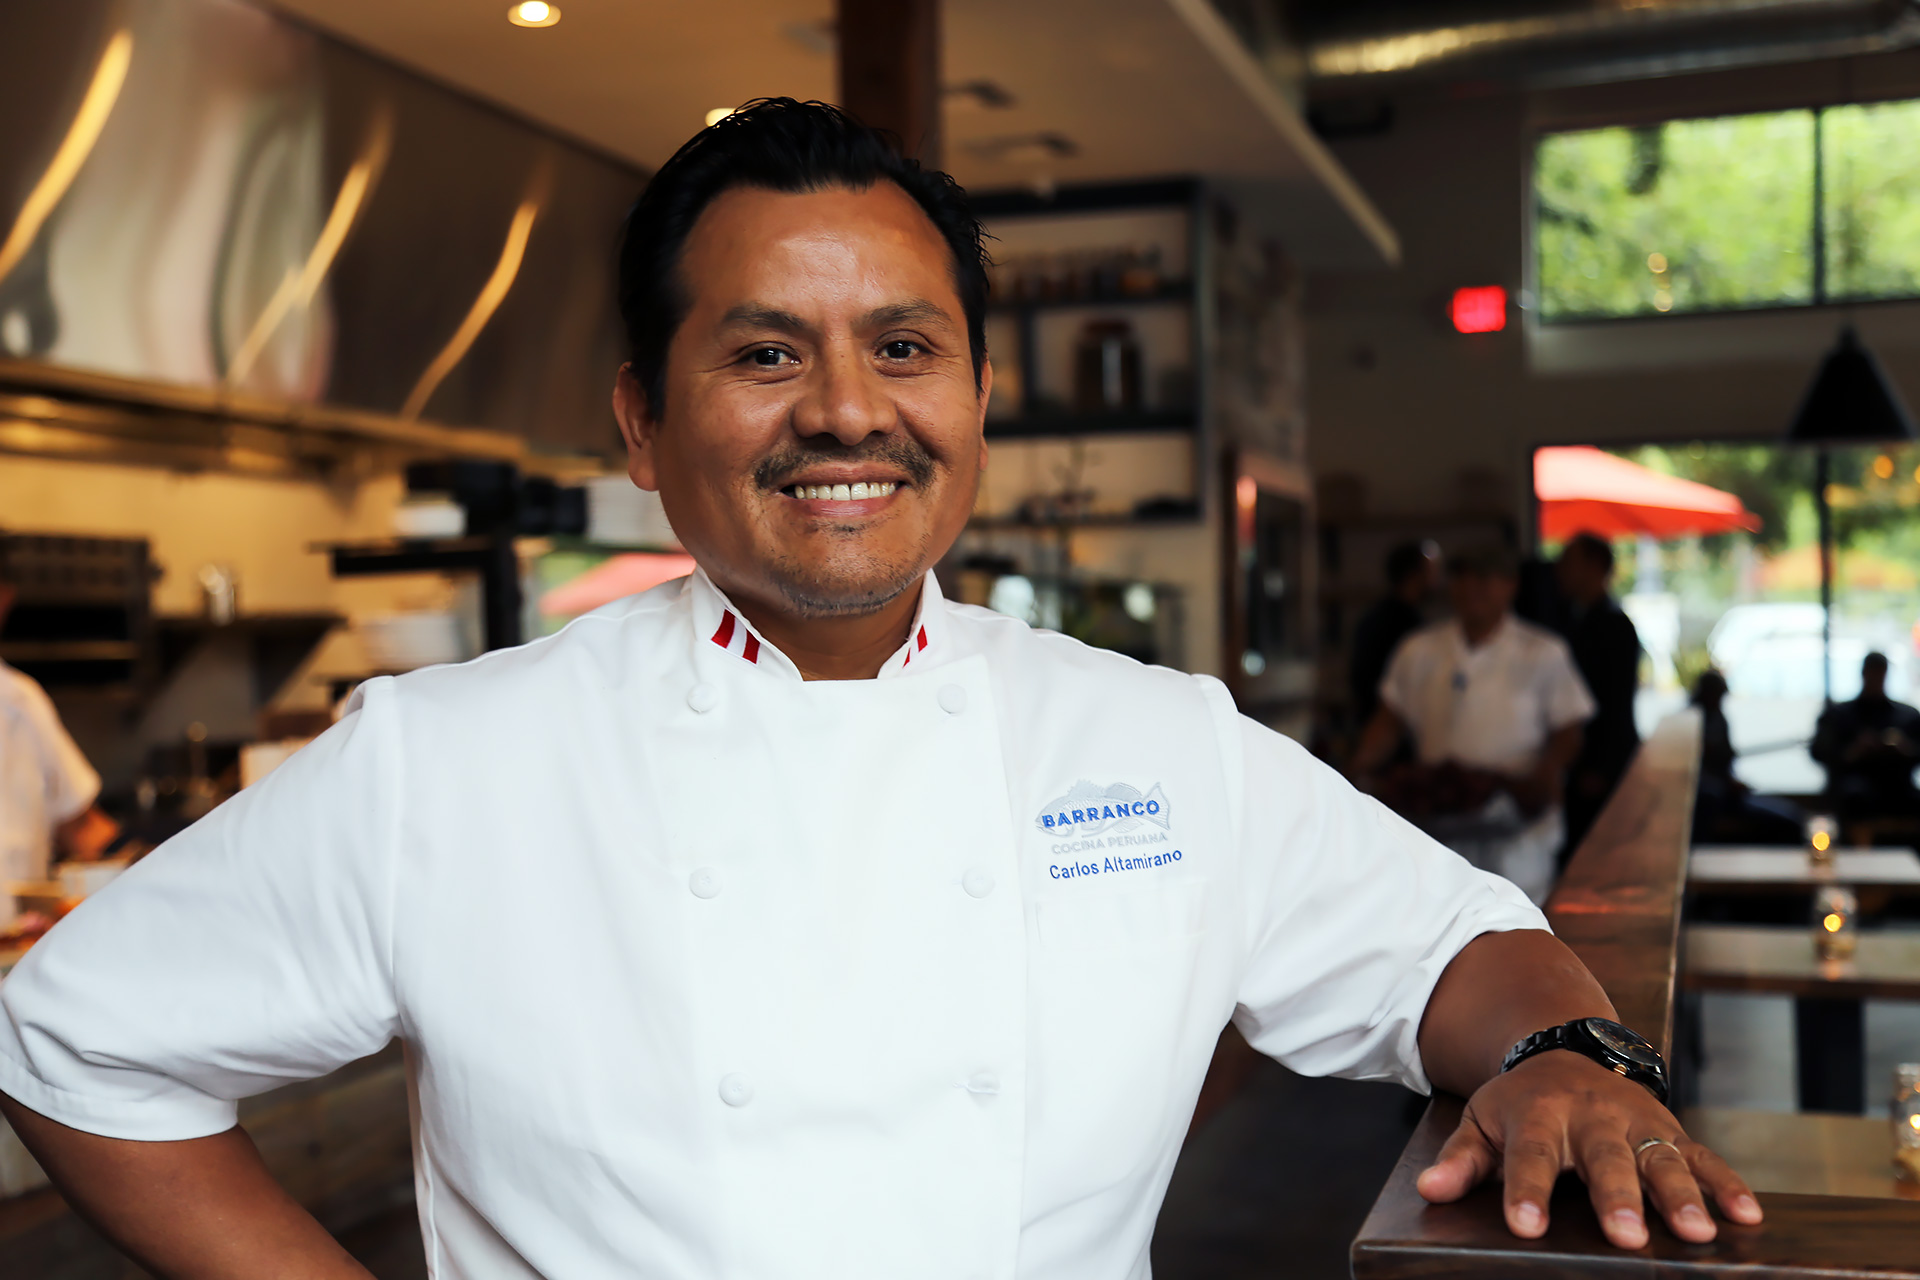 Barranco Chef/Owner Carlos Altamirano